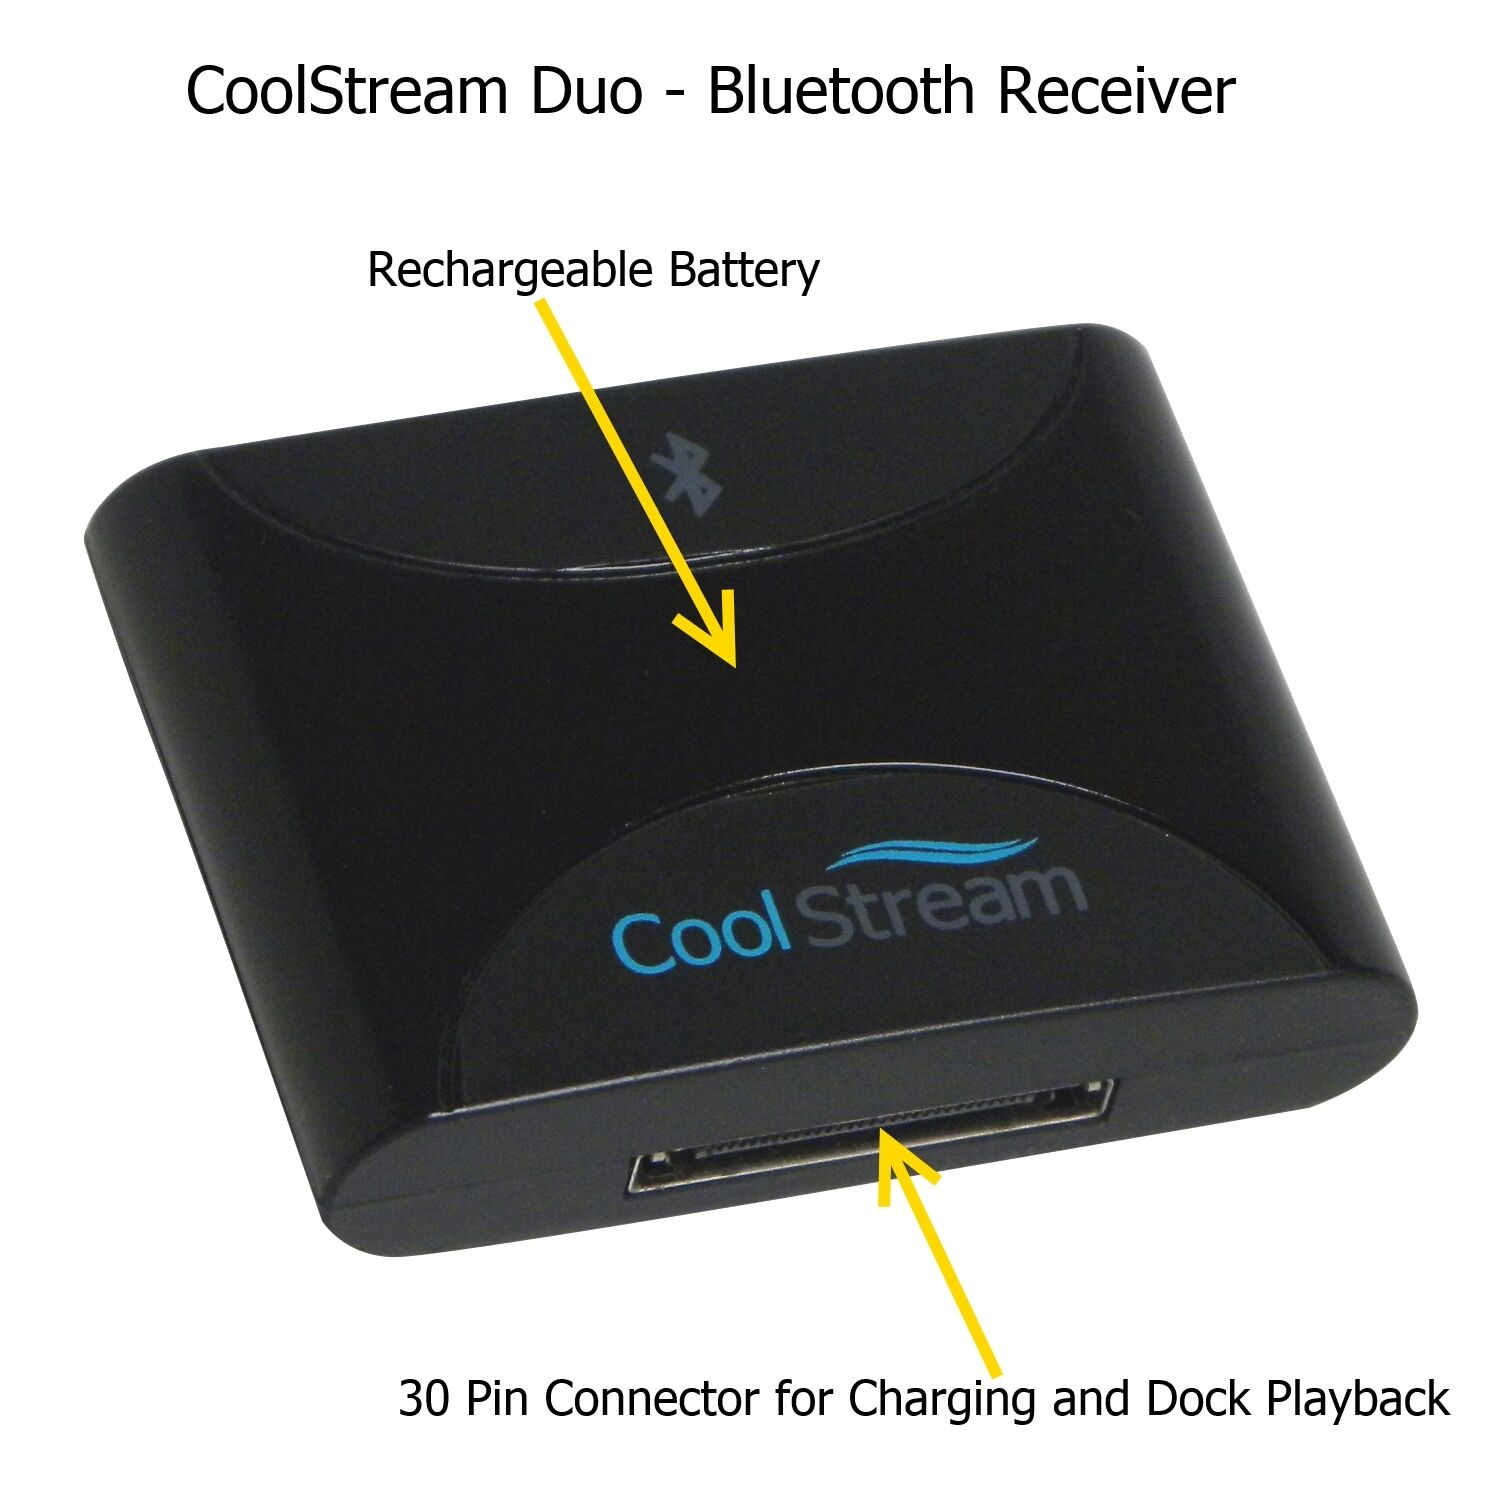 coolstream duo 30 pin bluetooth. Black Bedroom Furniture Sets. Home Design Ideas